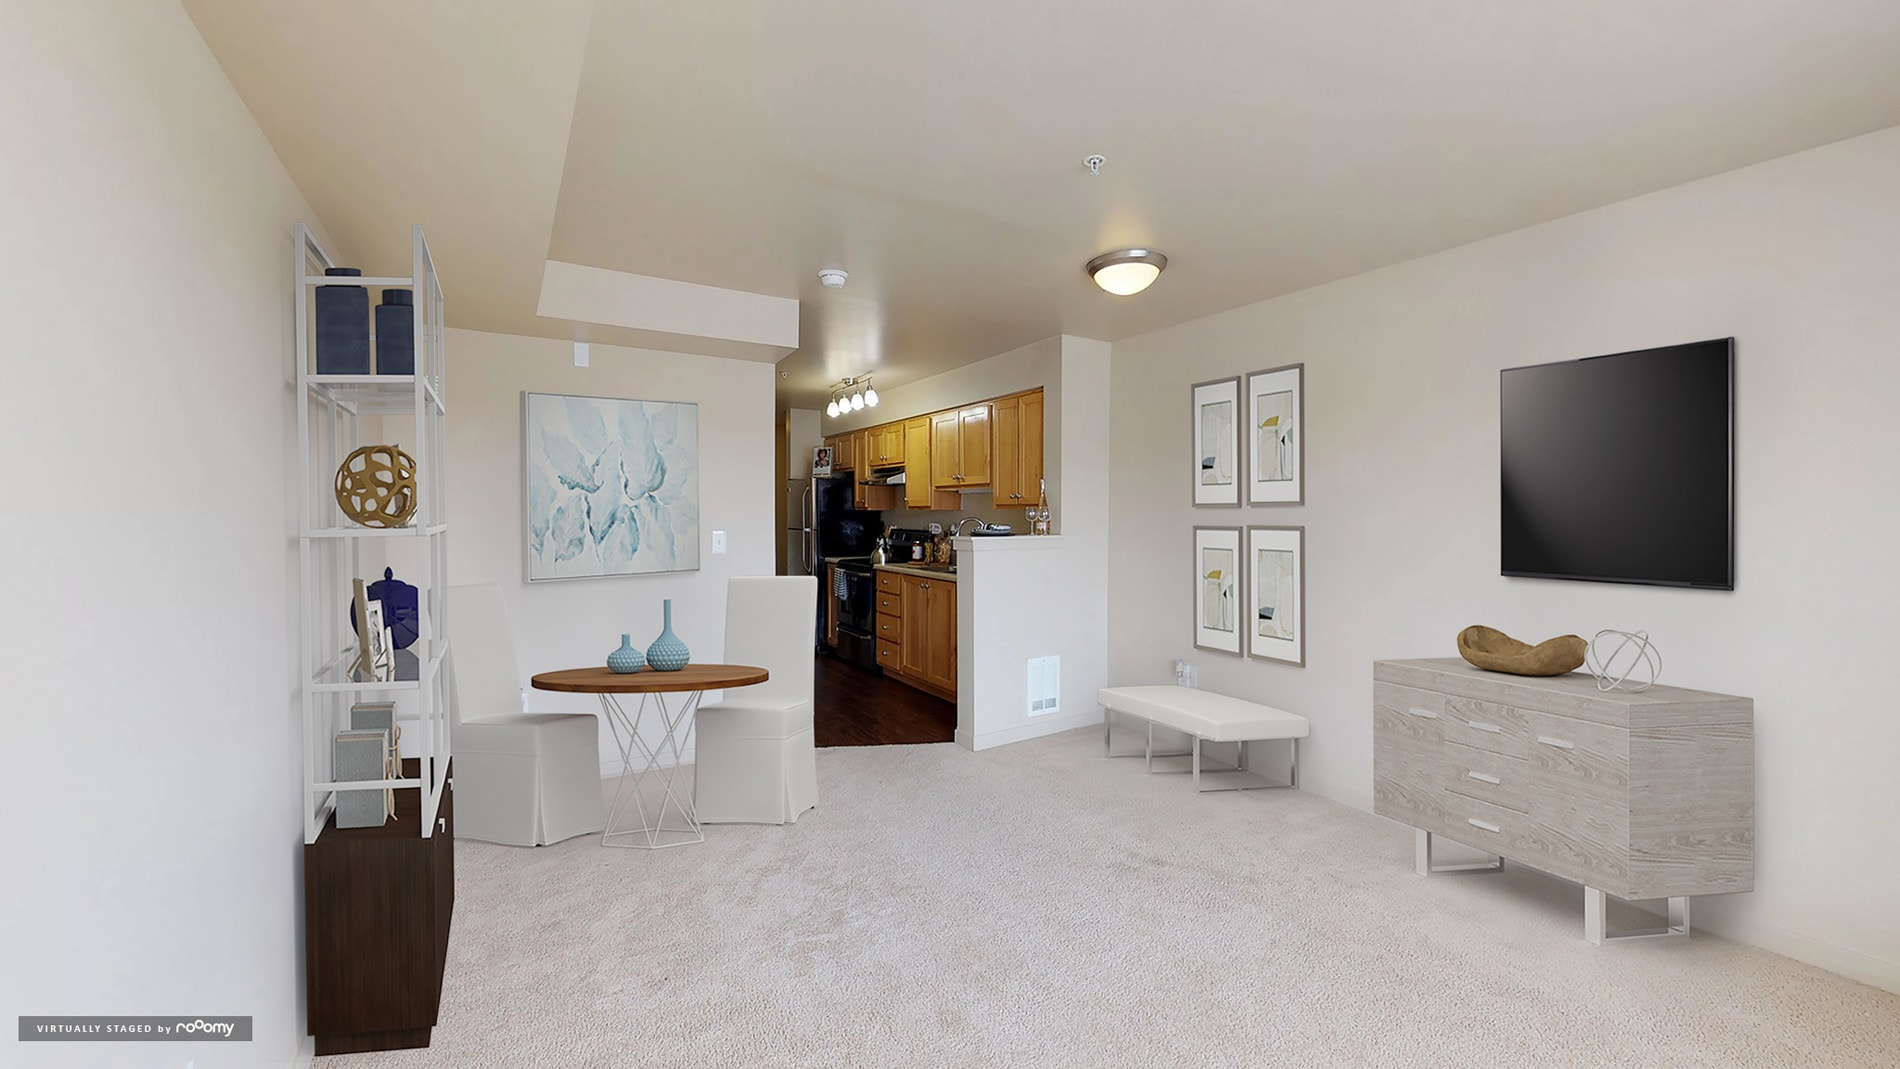 Apartments The Kennedy Building Living Room E1a Thekennedy 2018 Unit406 Kit1 Mp